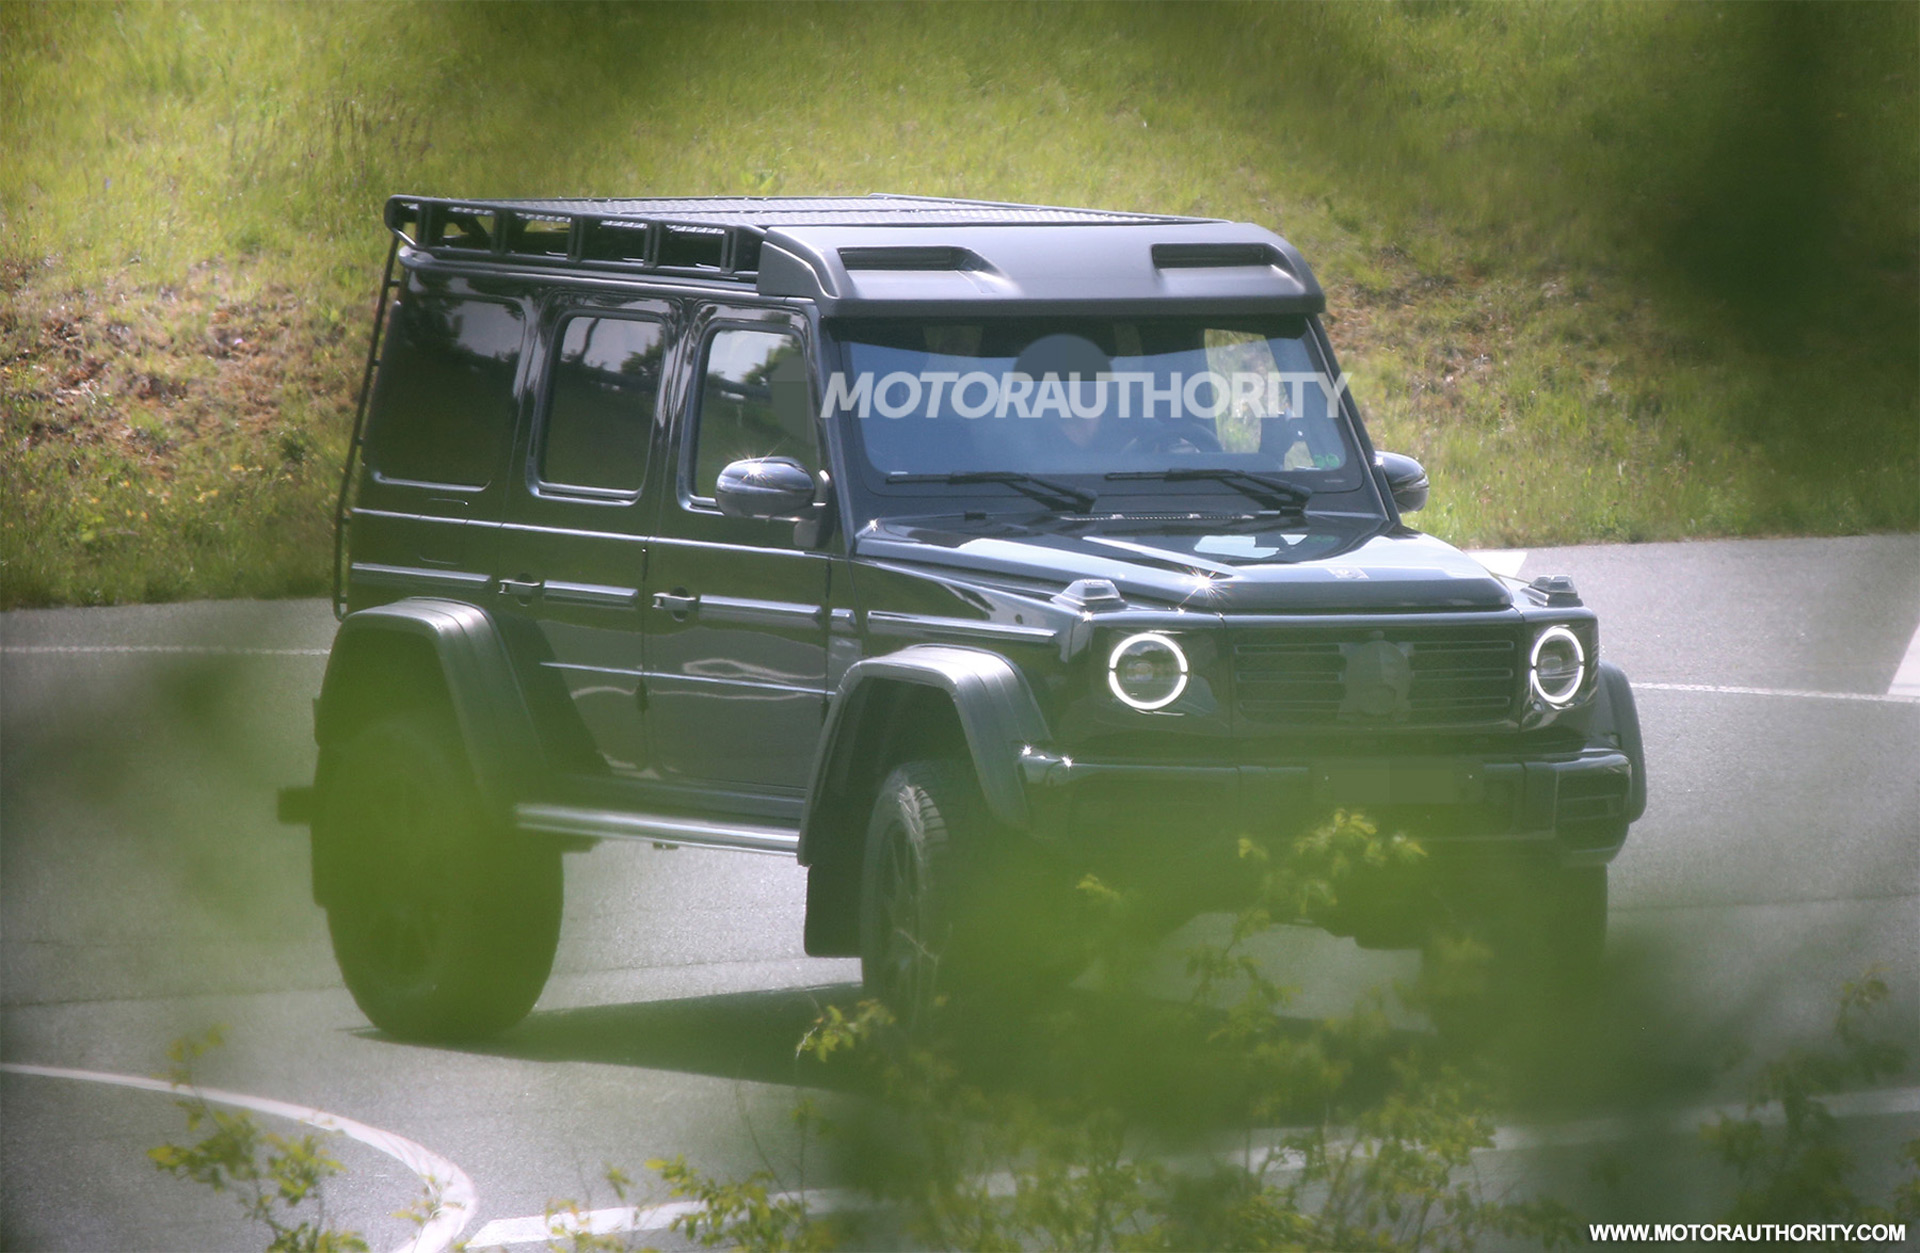 New Mercedes-Benz G550 4x4 Squared spy shots